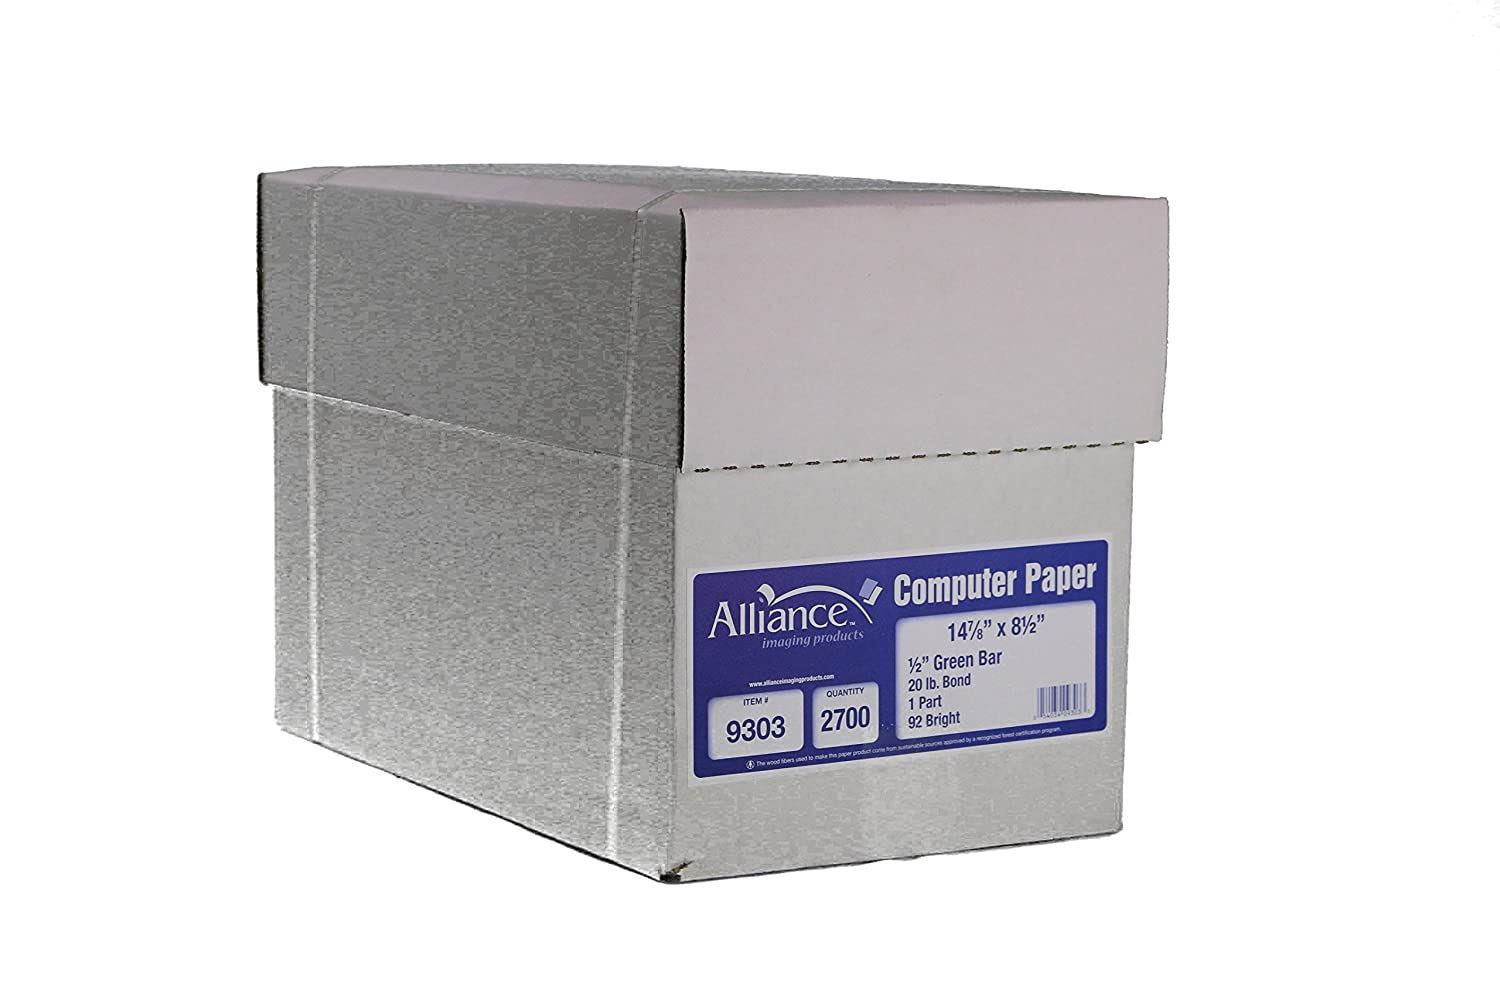 Alliance Continuous Computer Paper 14-7//8 x 8-1//2 with 1//2 Green Bar 1-Part 92 Bright 20lb 2700 Sheets per Carton 9303